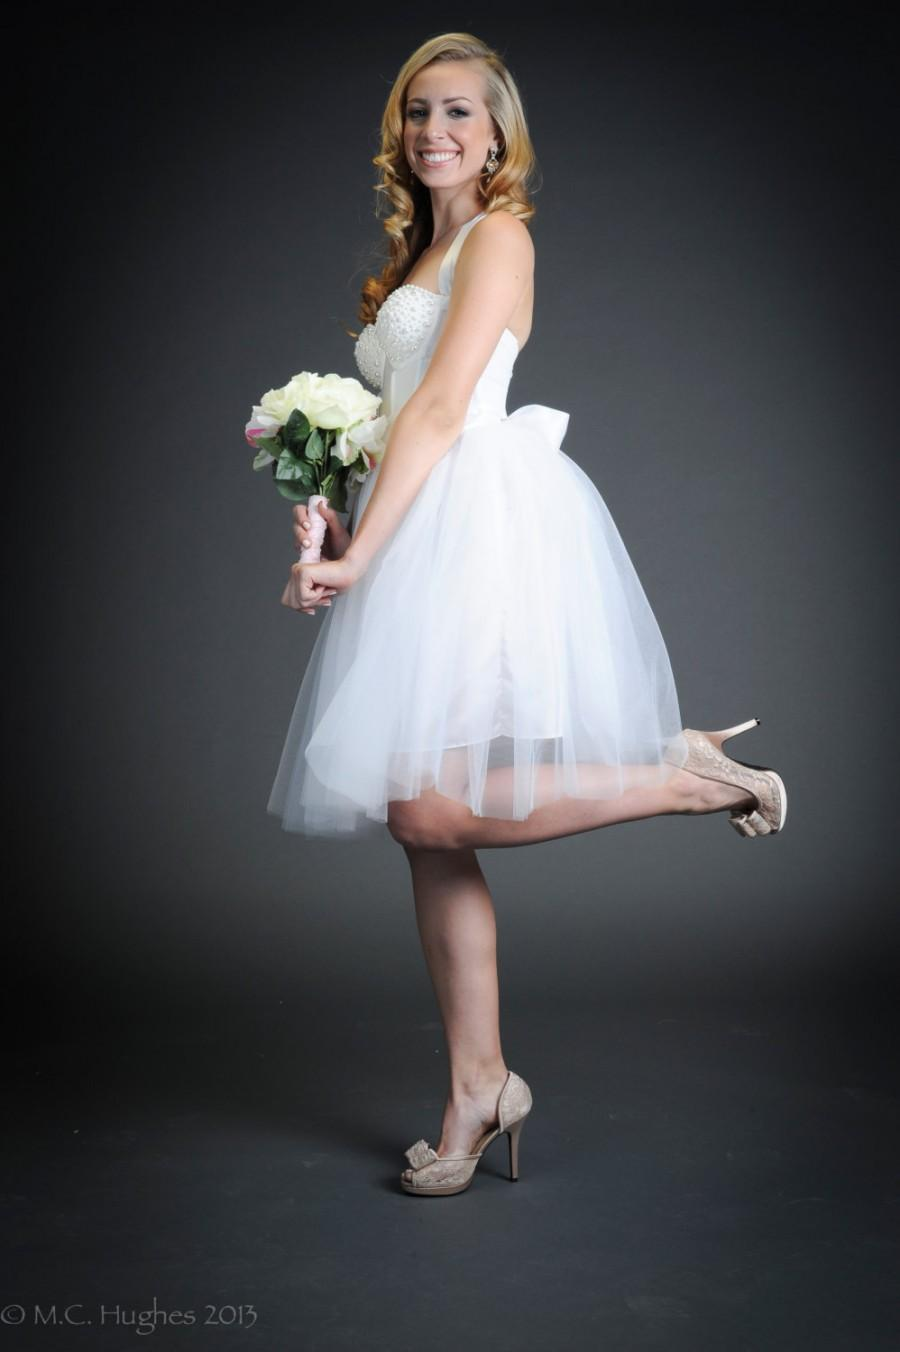 Düğün - White Tulle Tutu Knee Length Wedding Skirt Sash Short Modern Bride's Dress